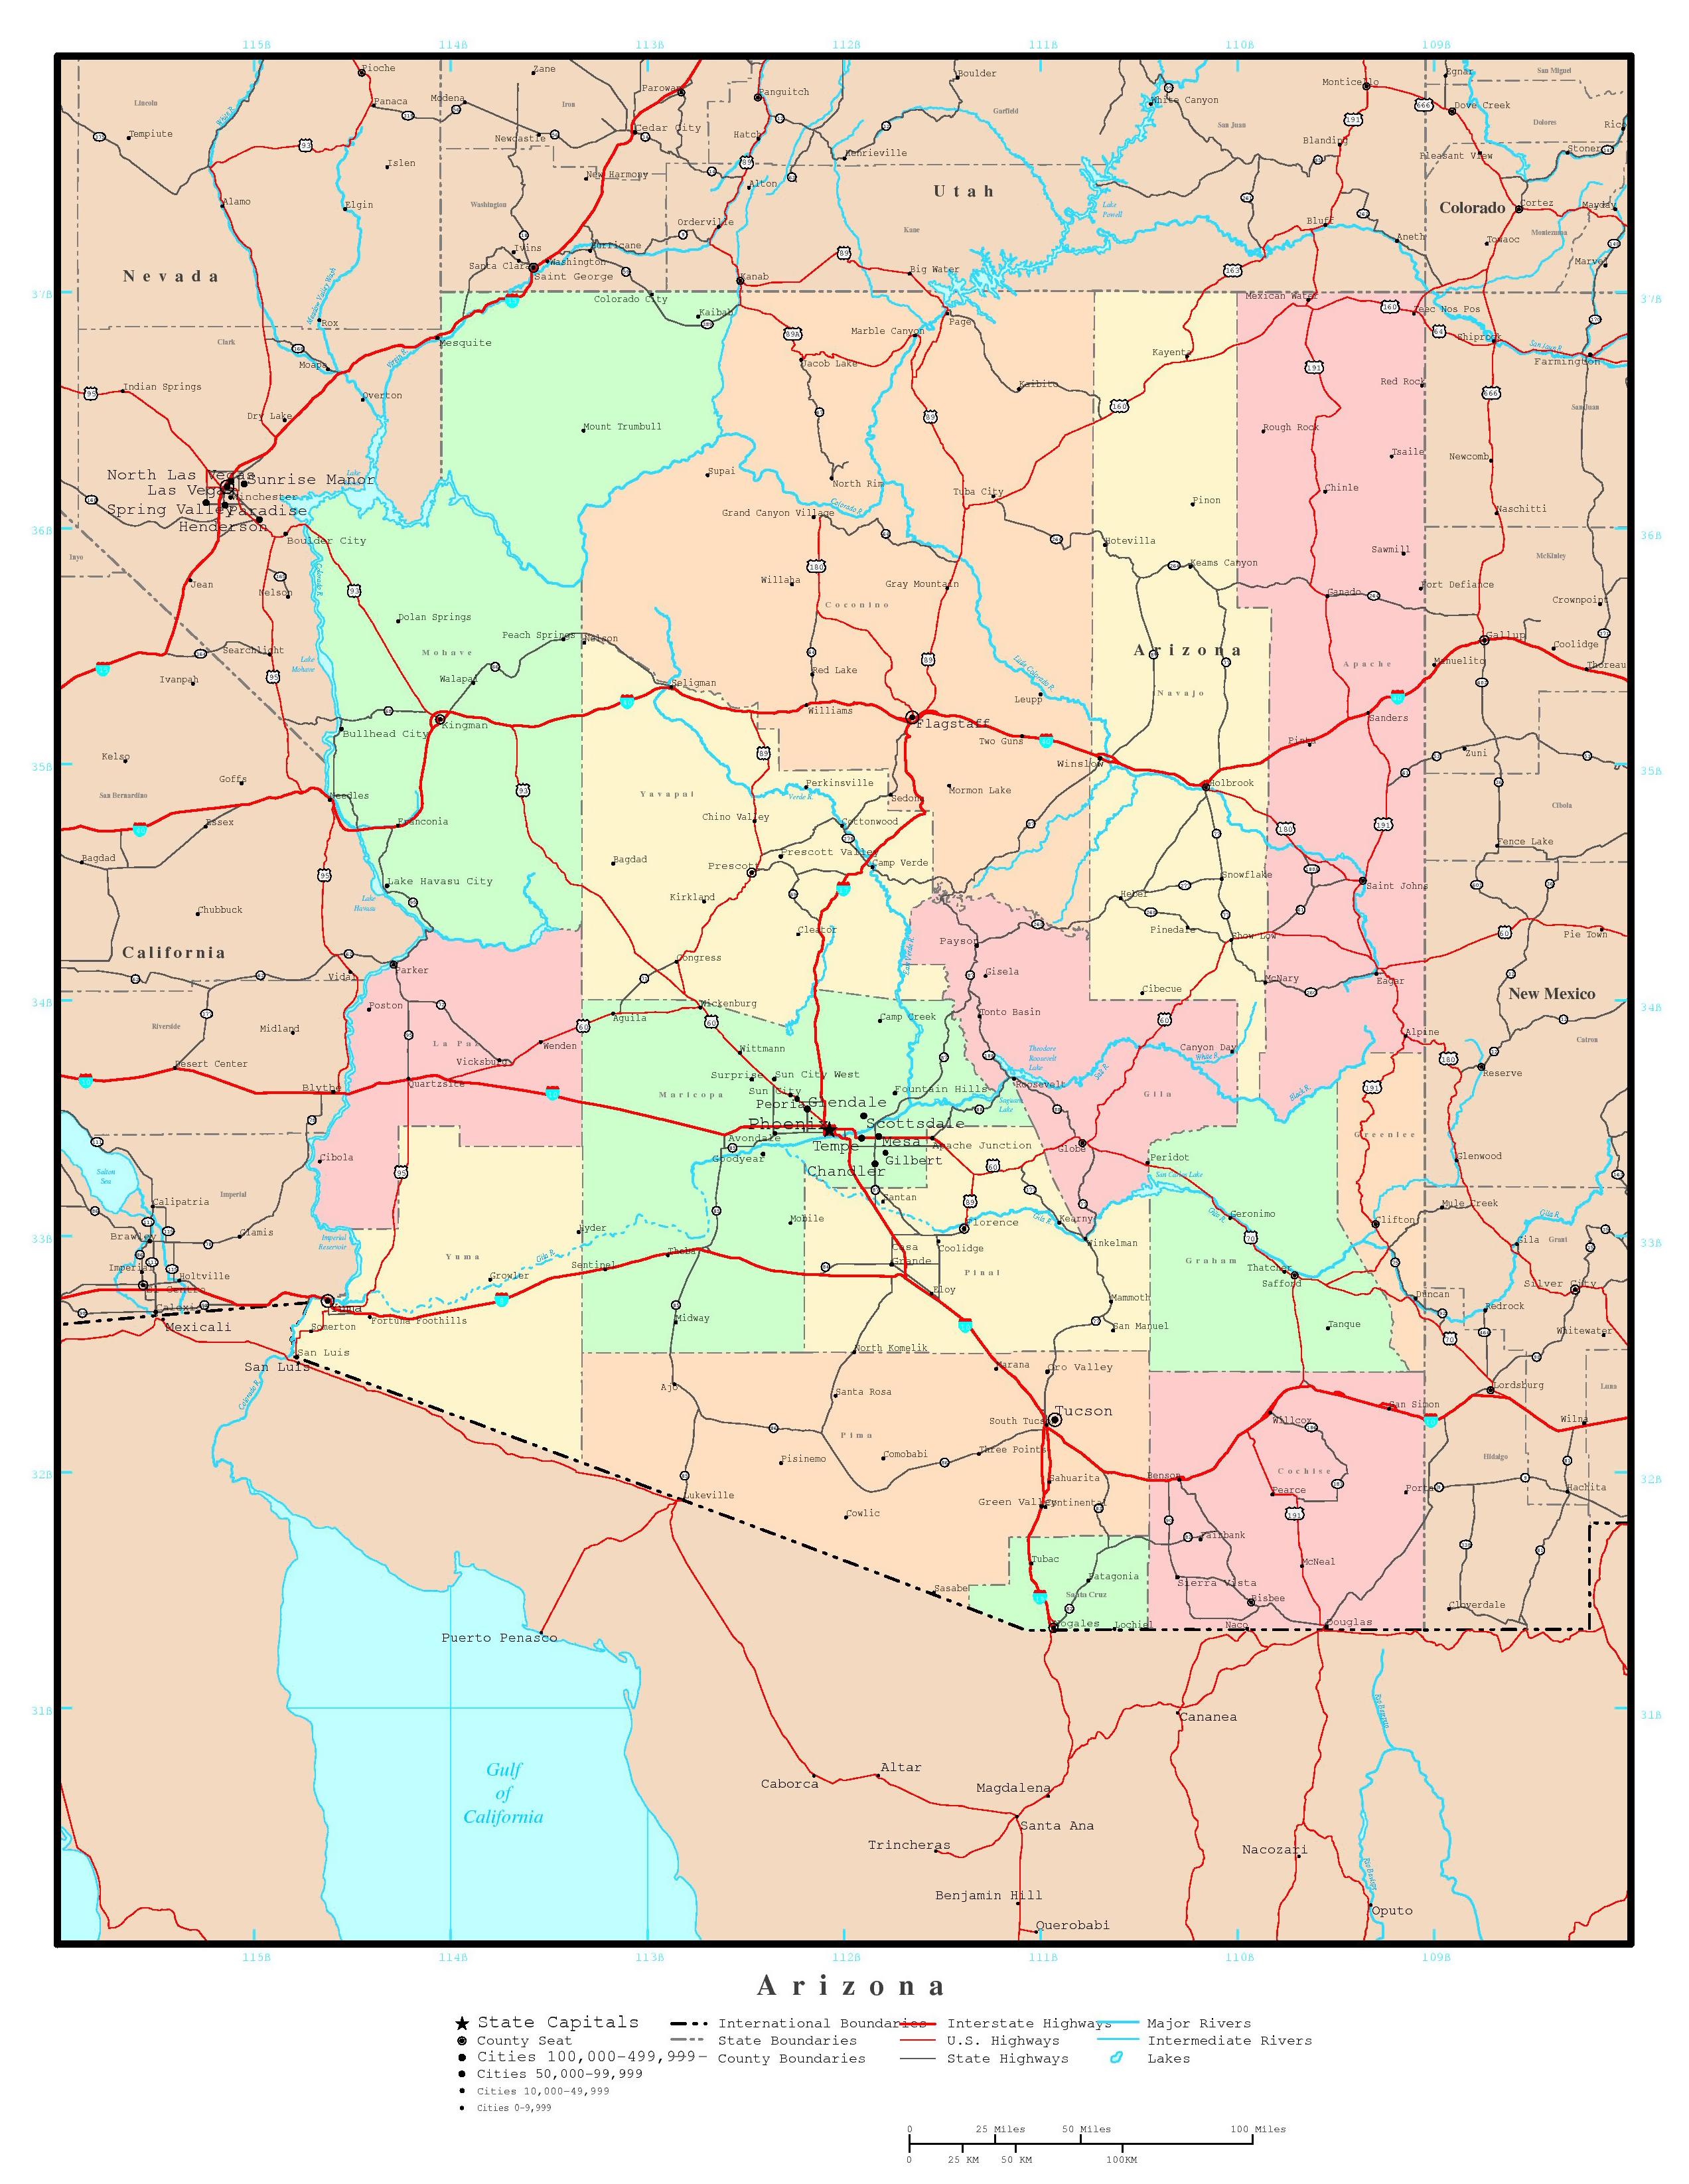 Map Of Arizona With Major Cities.Large Detailed Administrative Map Of Arizona State With Roads